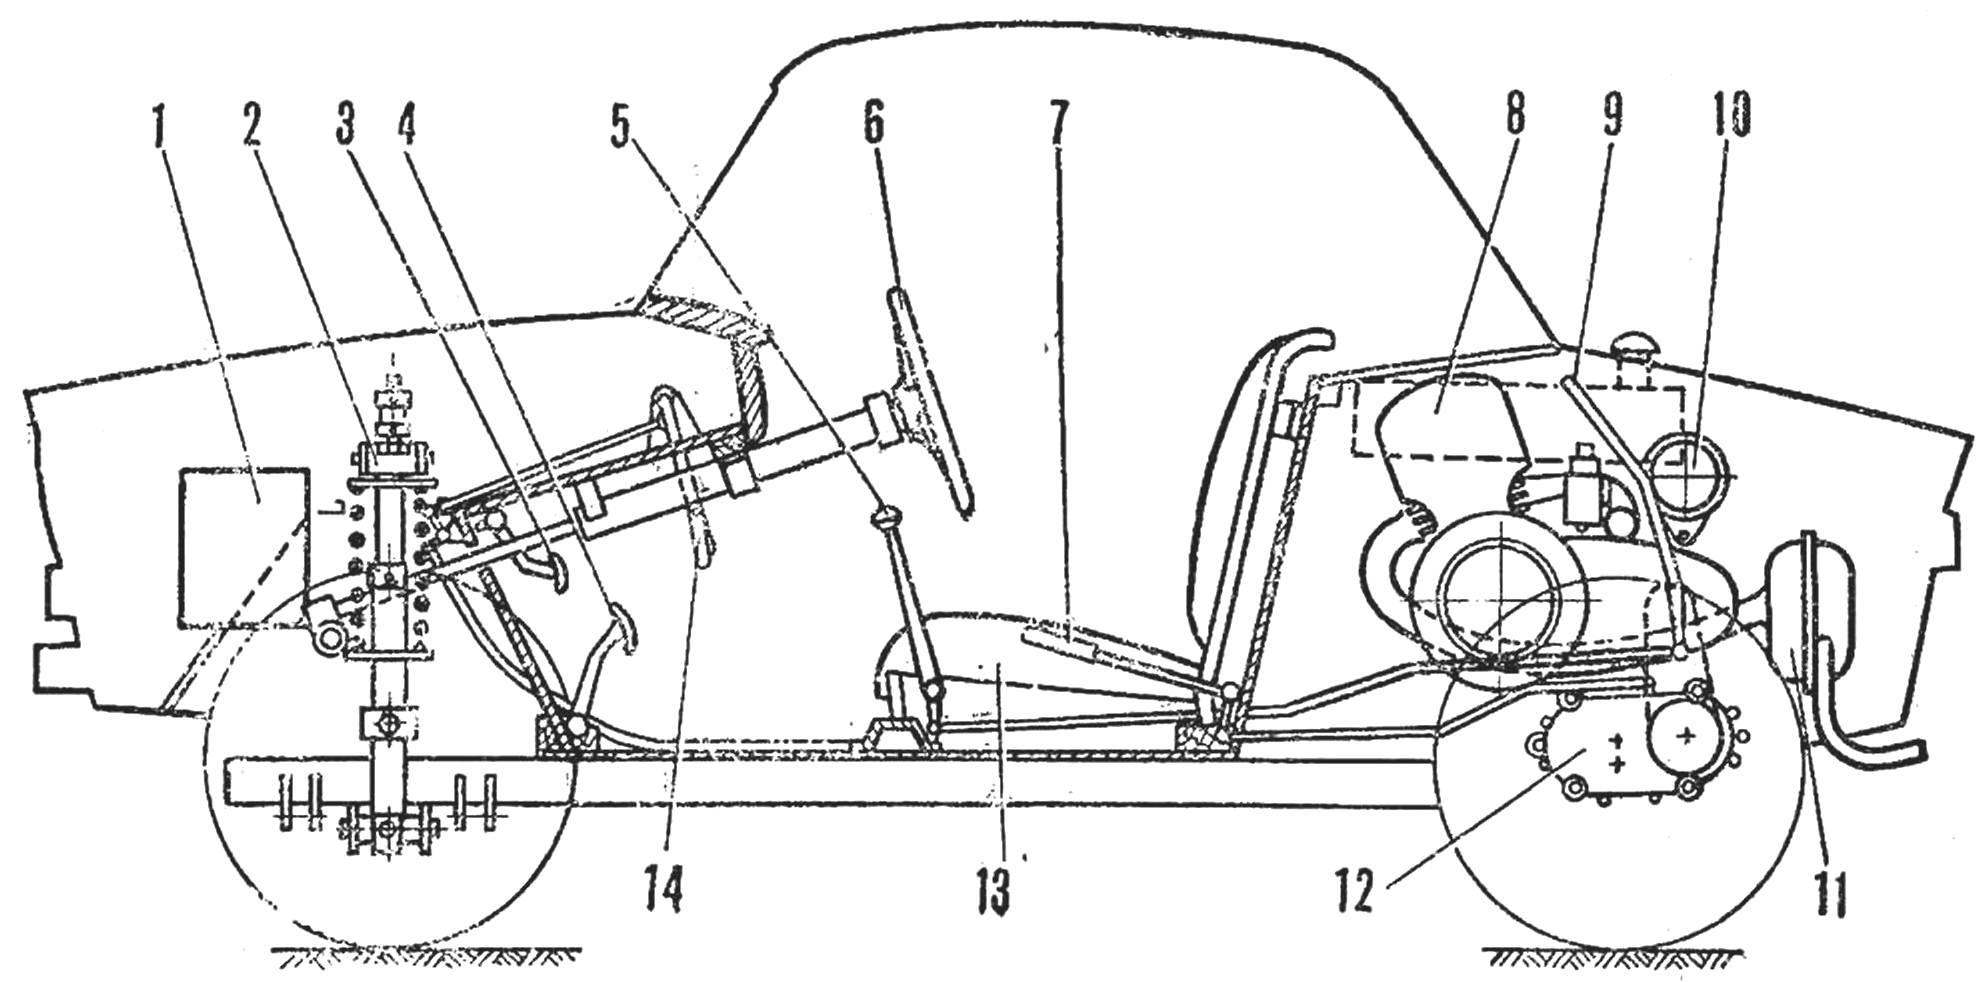 Fig. 1. The overall layout of the micro-car, only